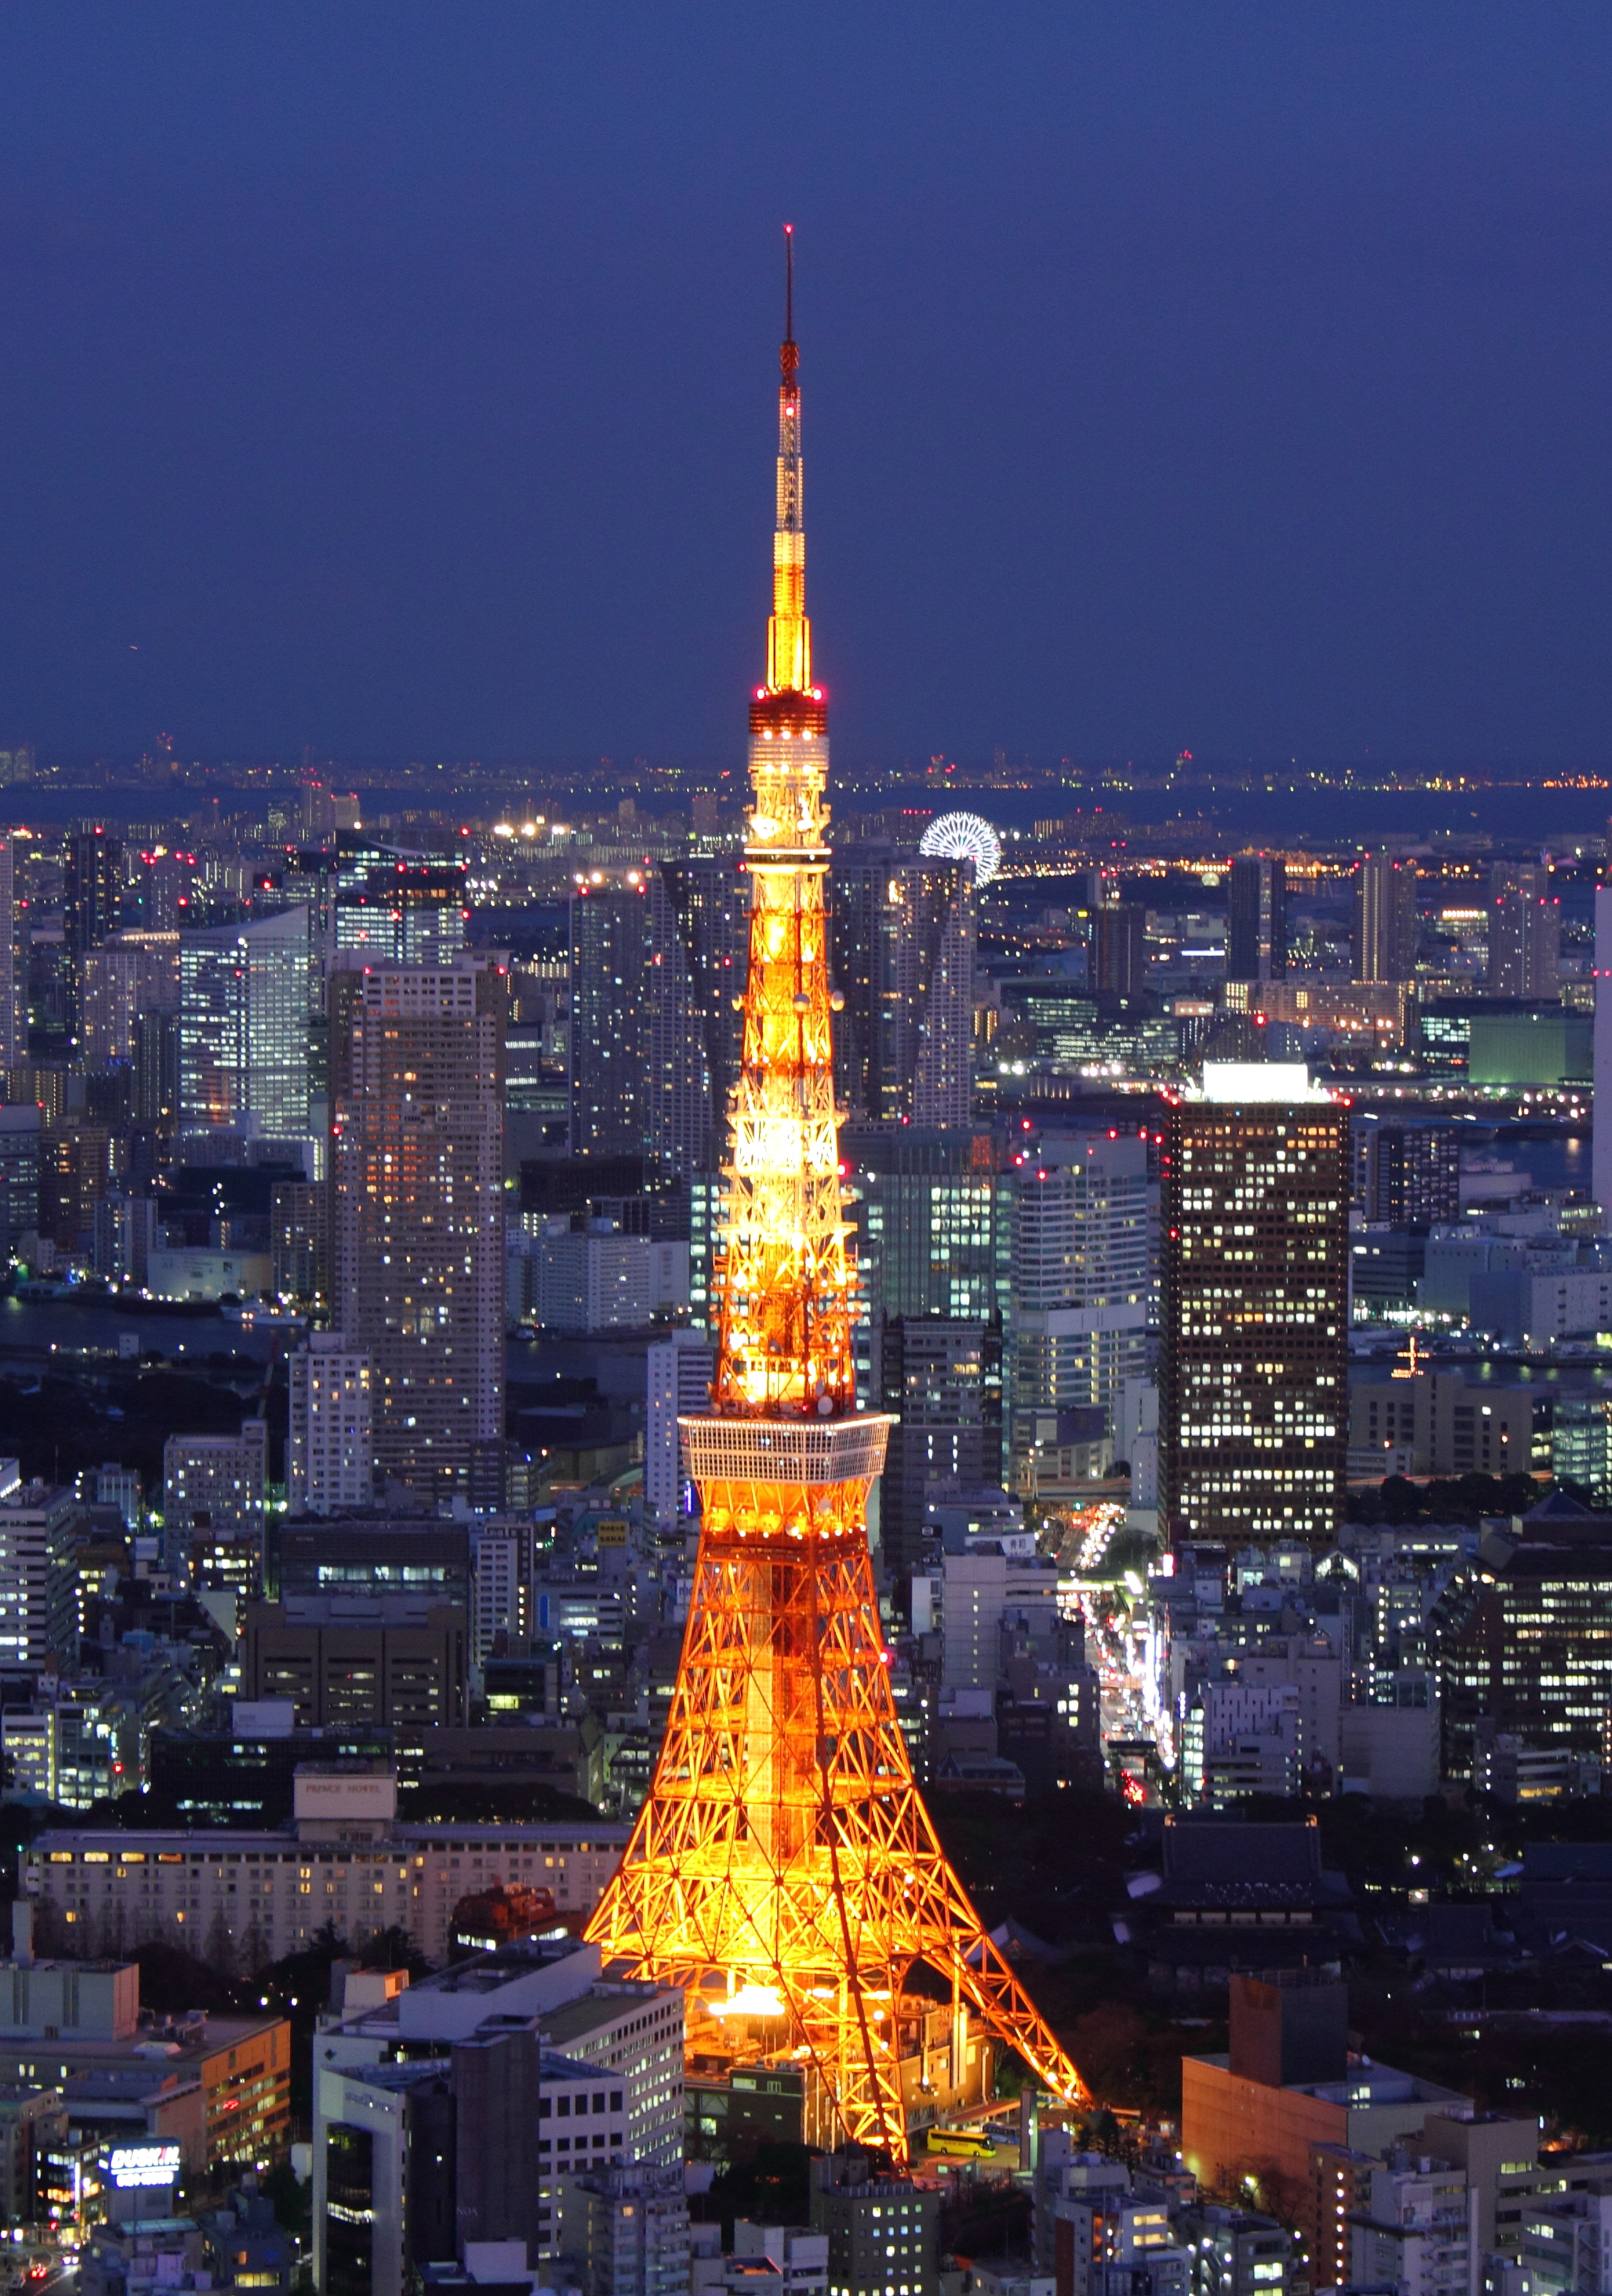 http://upload.wikimedia.org/wikipedia/commons/b/bc/Tokyo_Tower_at_night_2.JPG